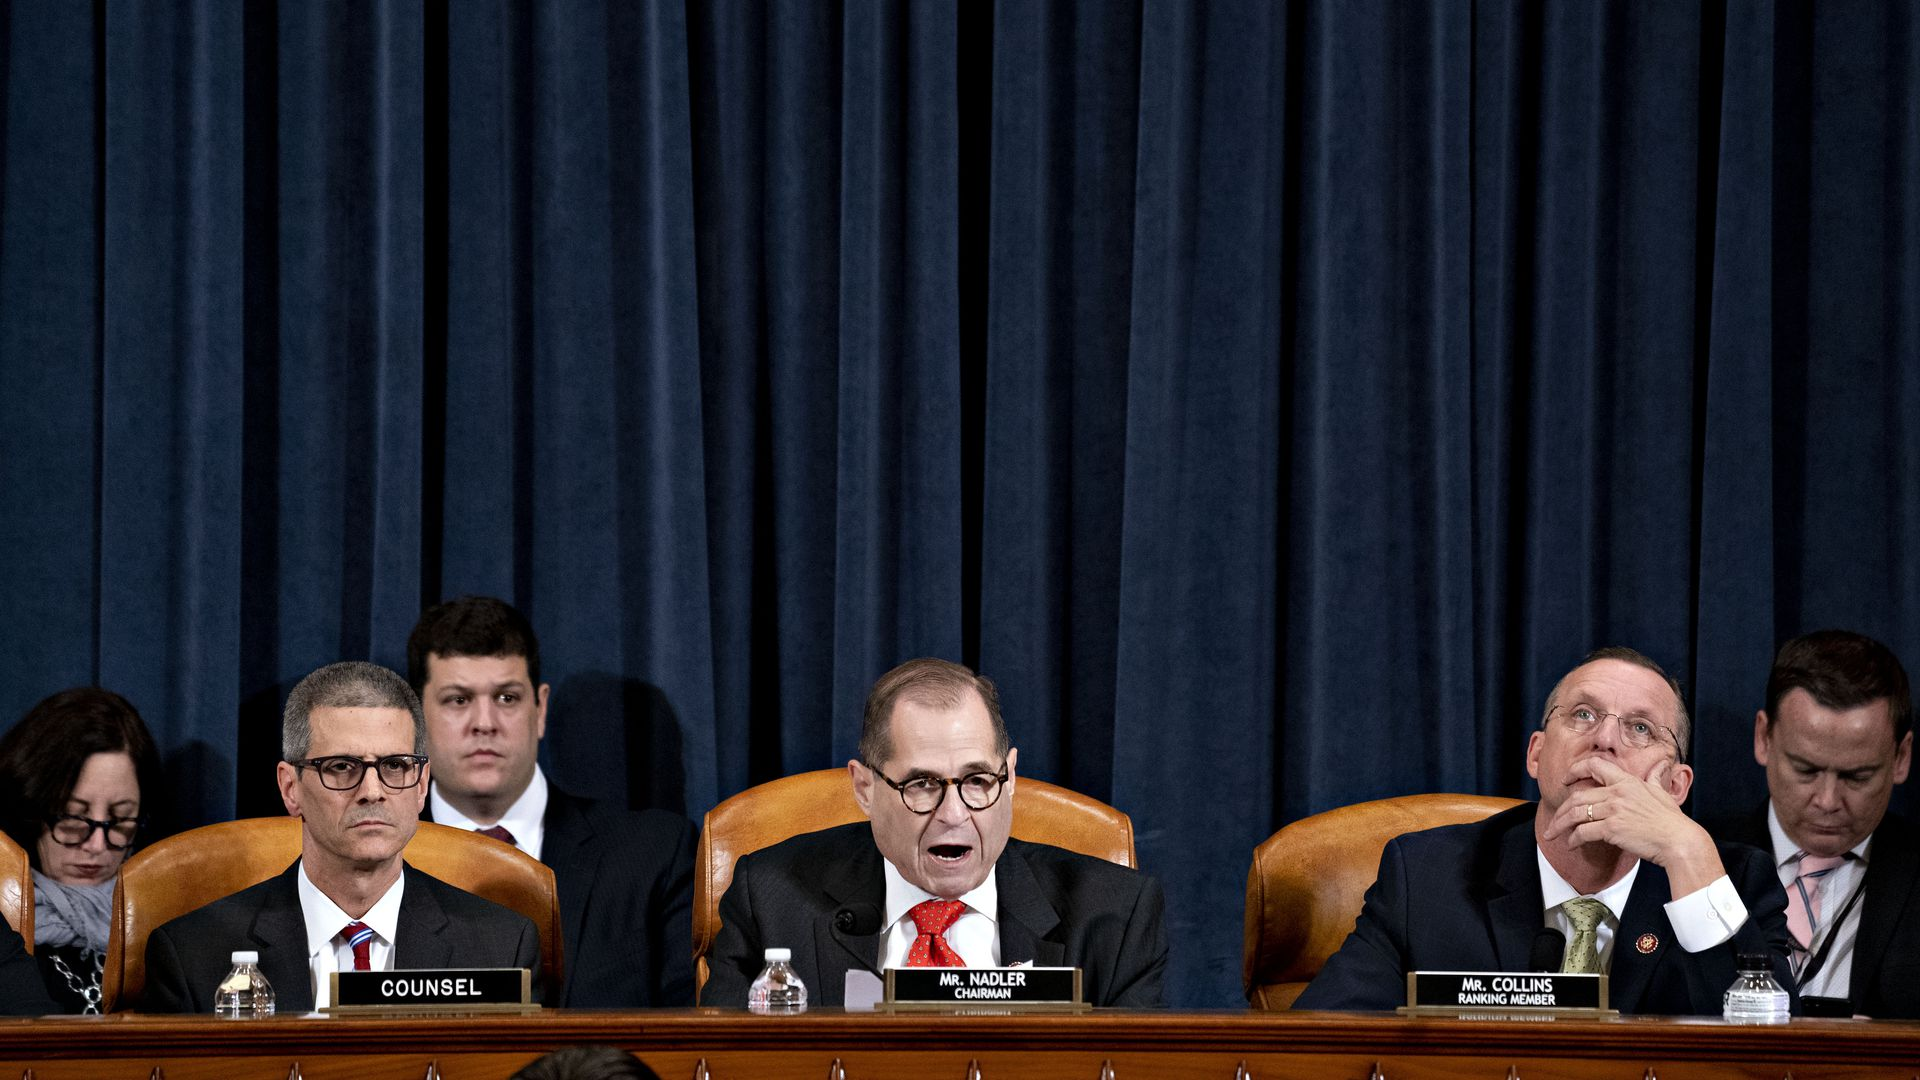 U.S. House Judiciary Committee Chairman Jerry Nadler (D-NY) (C) speaks as ranking member Rep. Doug Collins (R-GA) (R) listens